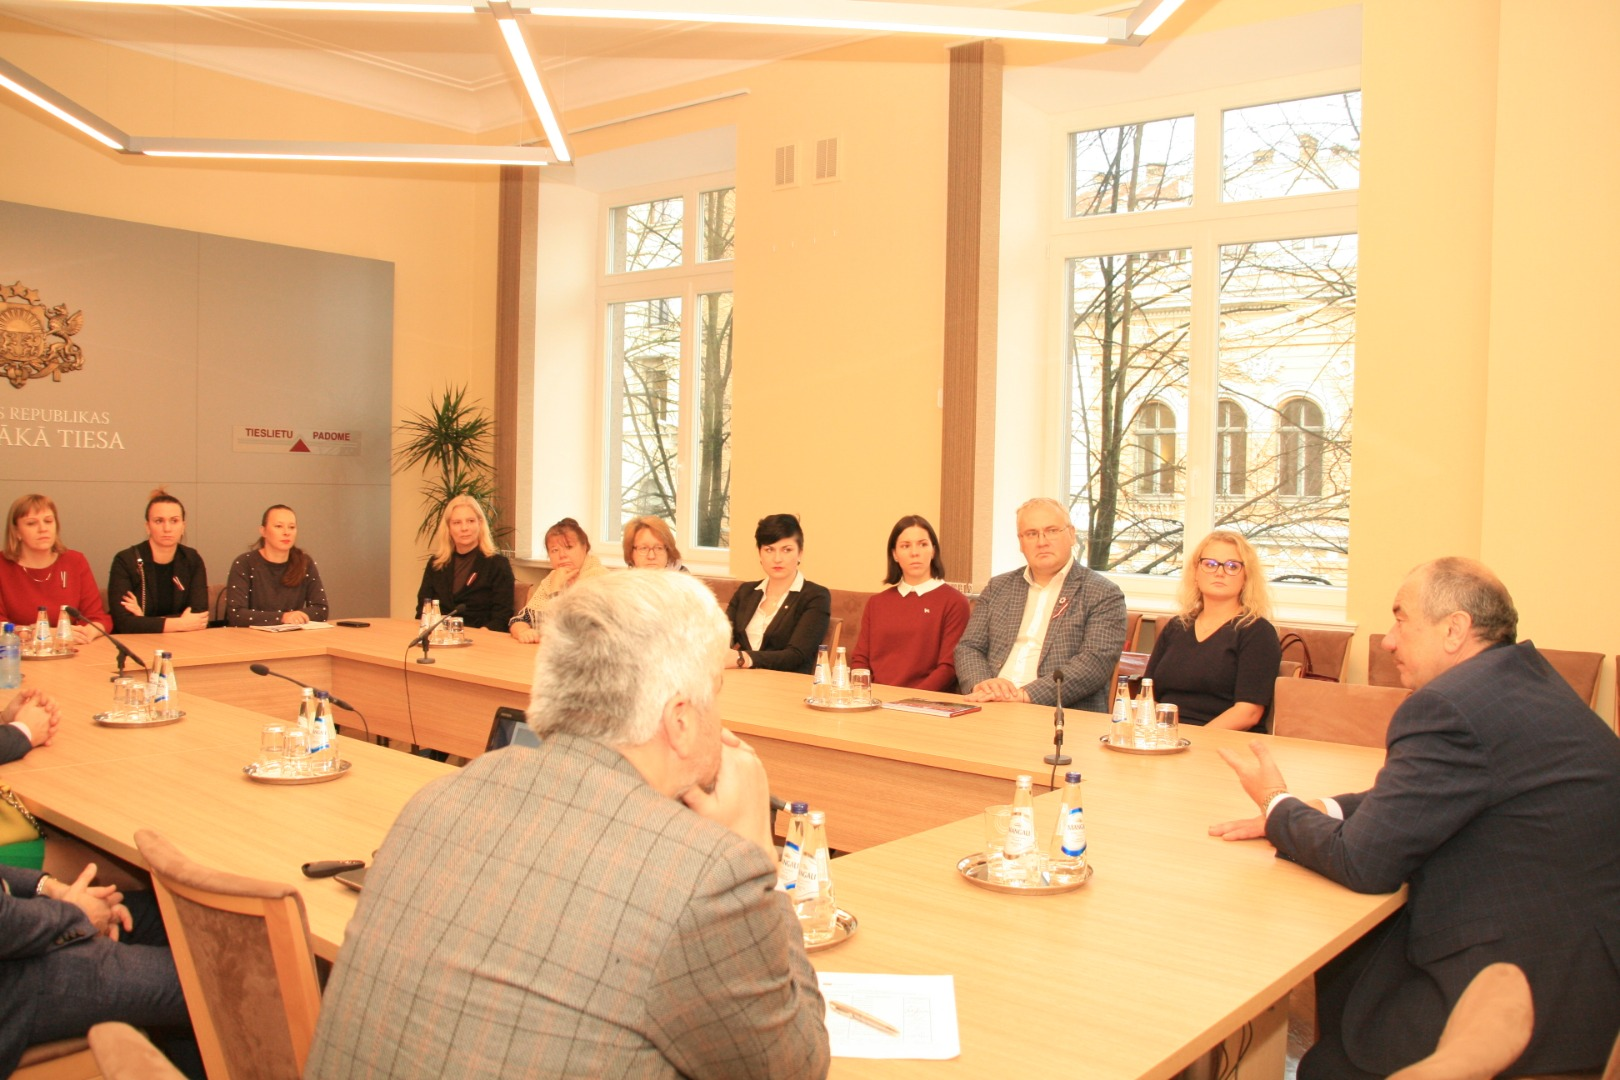 """15.11.2018. On the eve of the National Day, the aim of the visit of professors of the Faculty of Law of Riga Stradins University was not only to learn history by watching the film """"Senators"""" and participating in a guided tour in the Palace of Justice, but also to gain information useful in teaching work. During the meeting, Ivars Bickovics, the Chief Justice of the Supreme Court, and Anita Zikmane, the Head of the Division of Case-law and Research, emphasized the importance of the conclusions of the Supreme Court judgments as an educational resource for lawyers."""